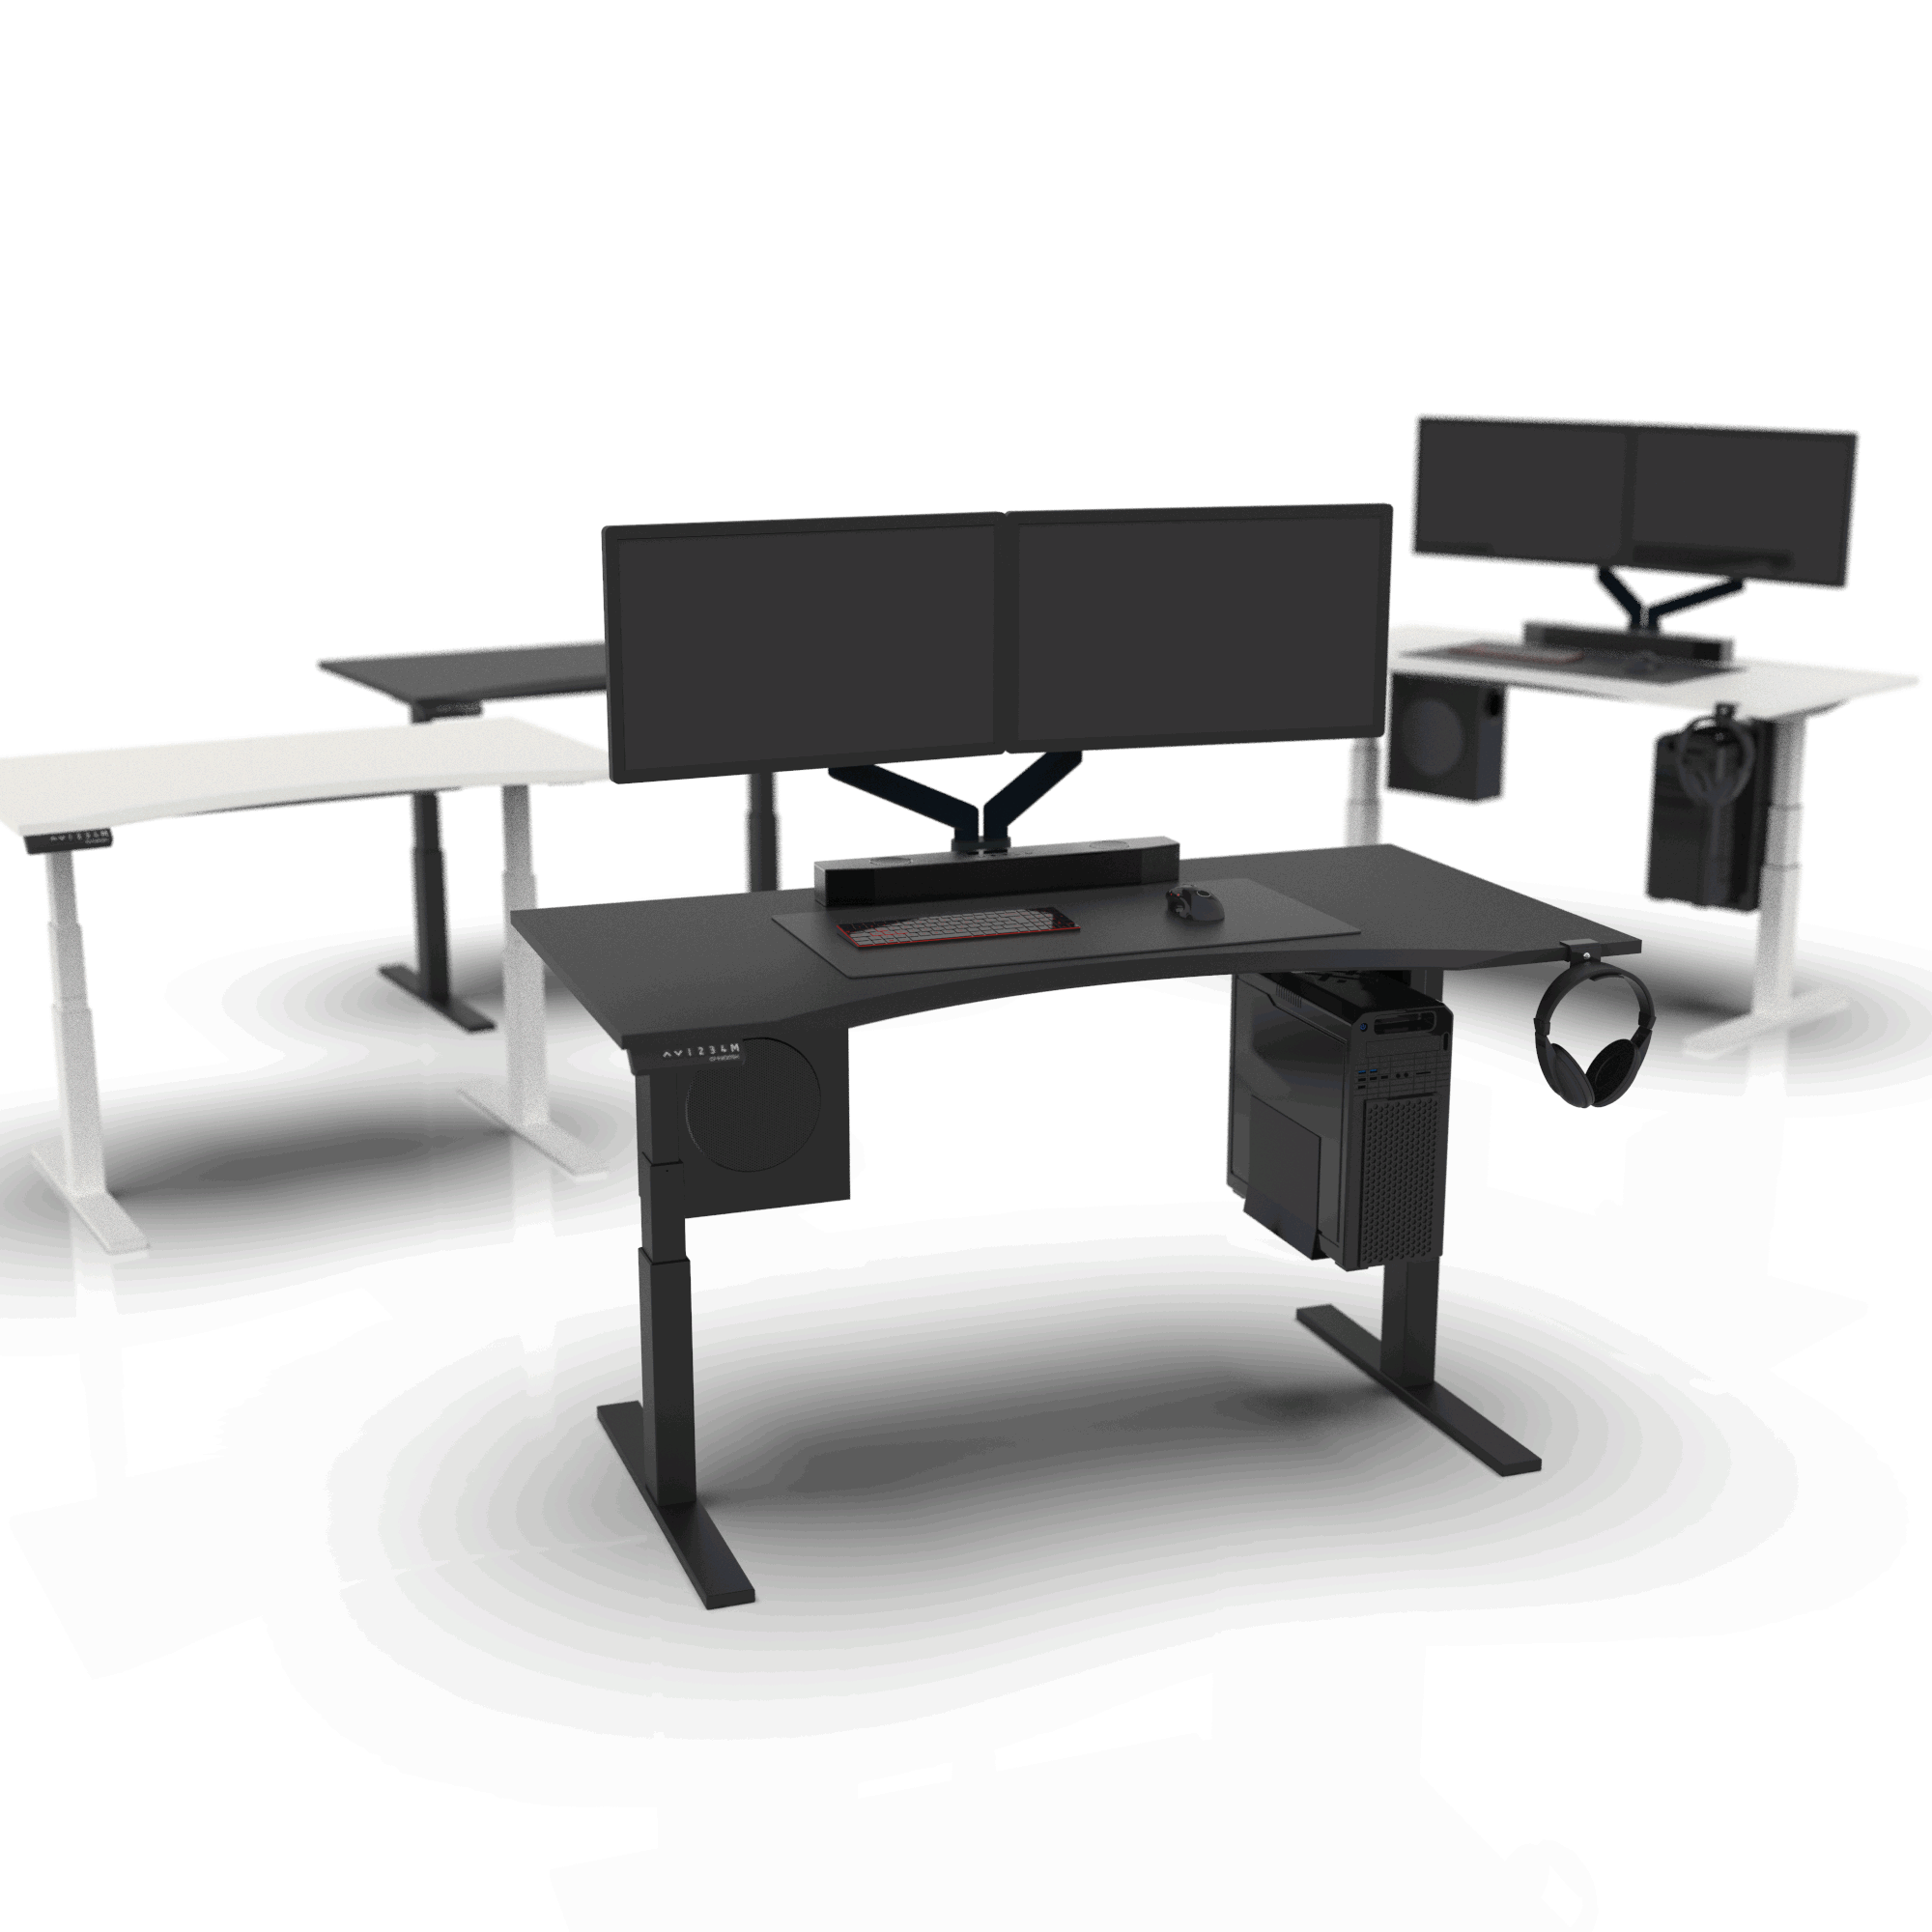 Omnidesk Pro - Ultimate Sit-stand Desk from $680